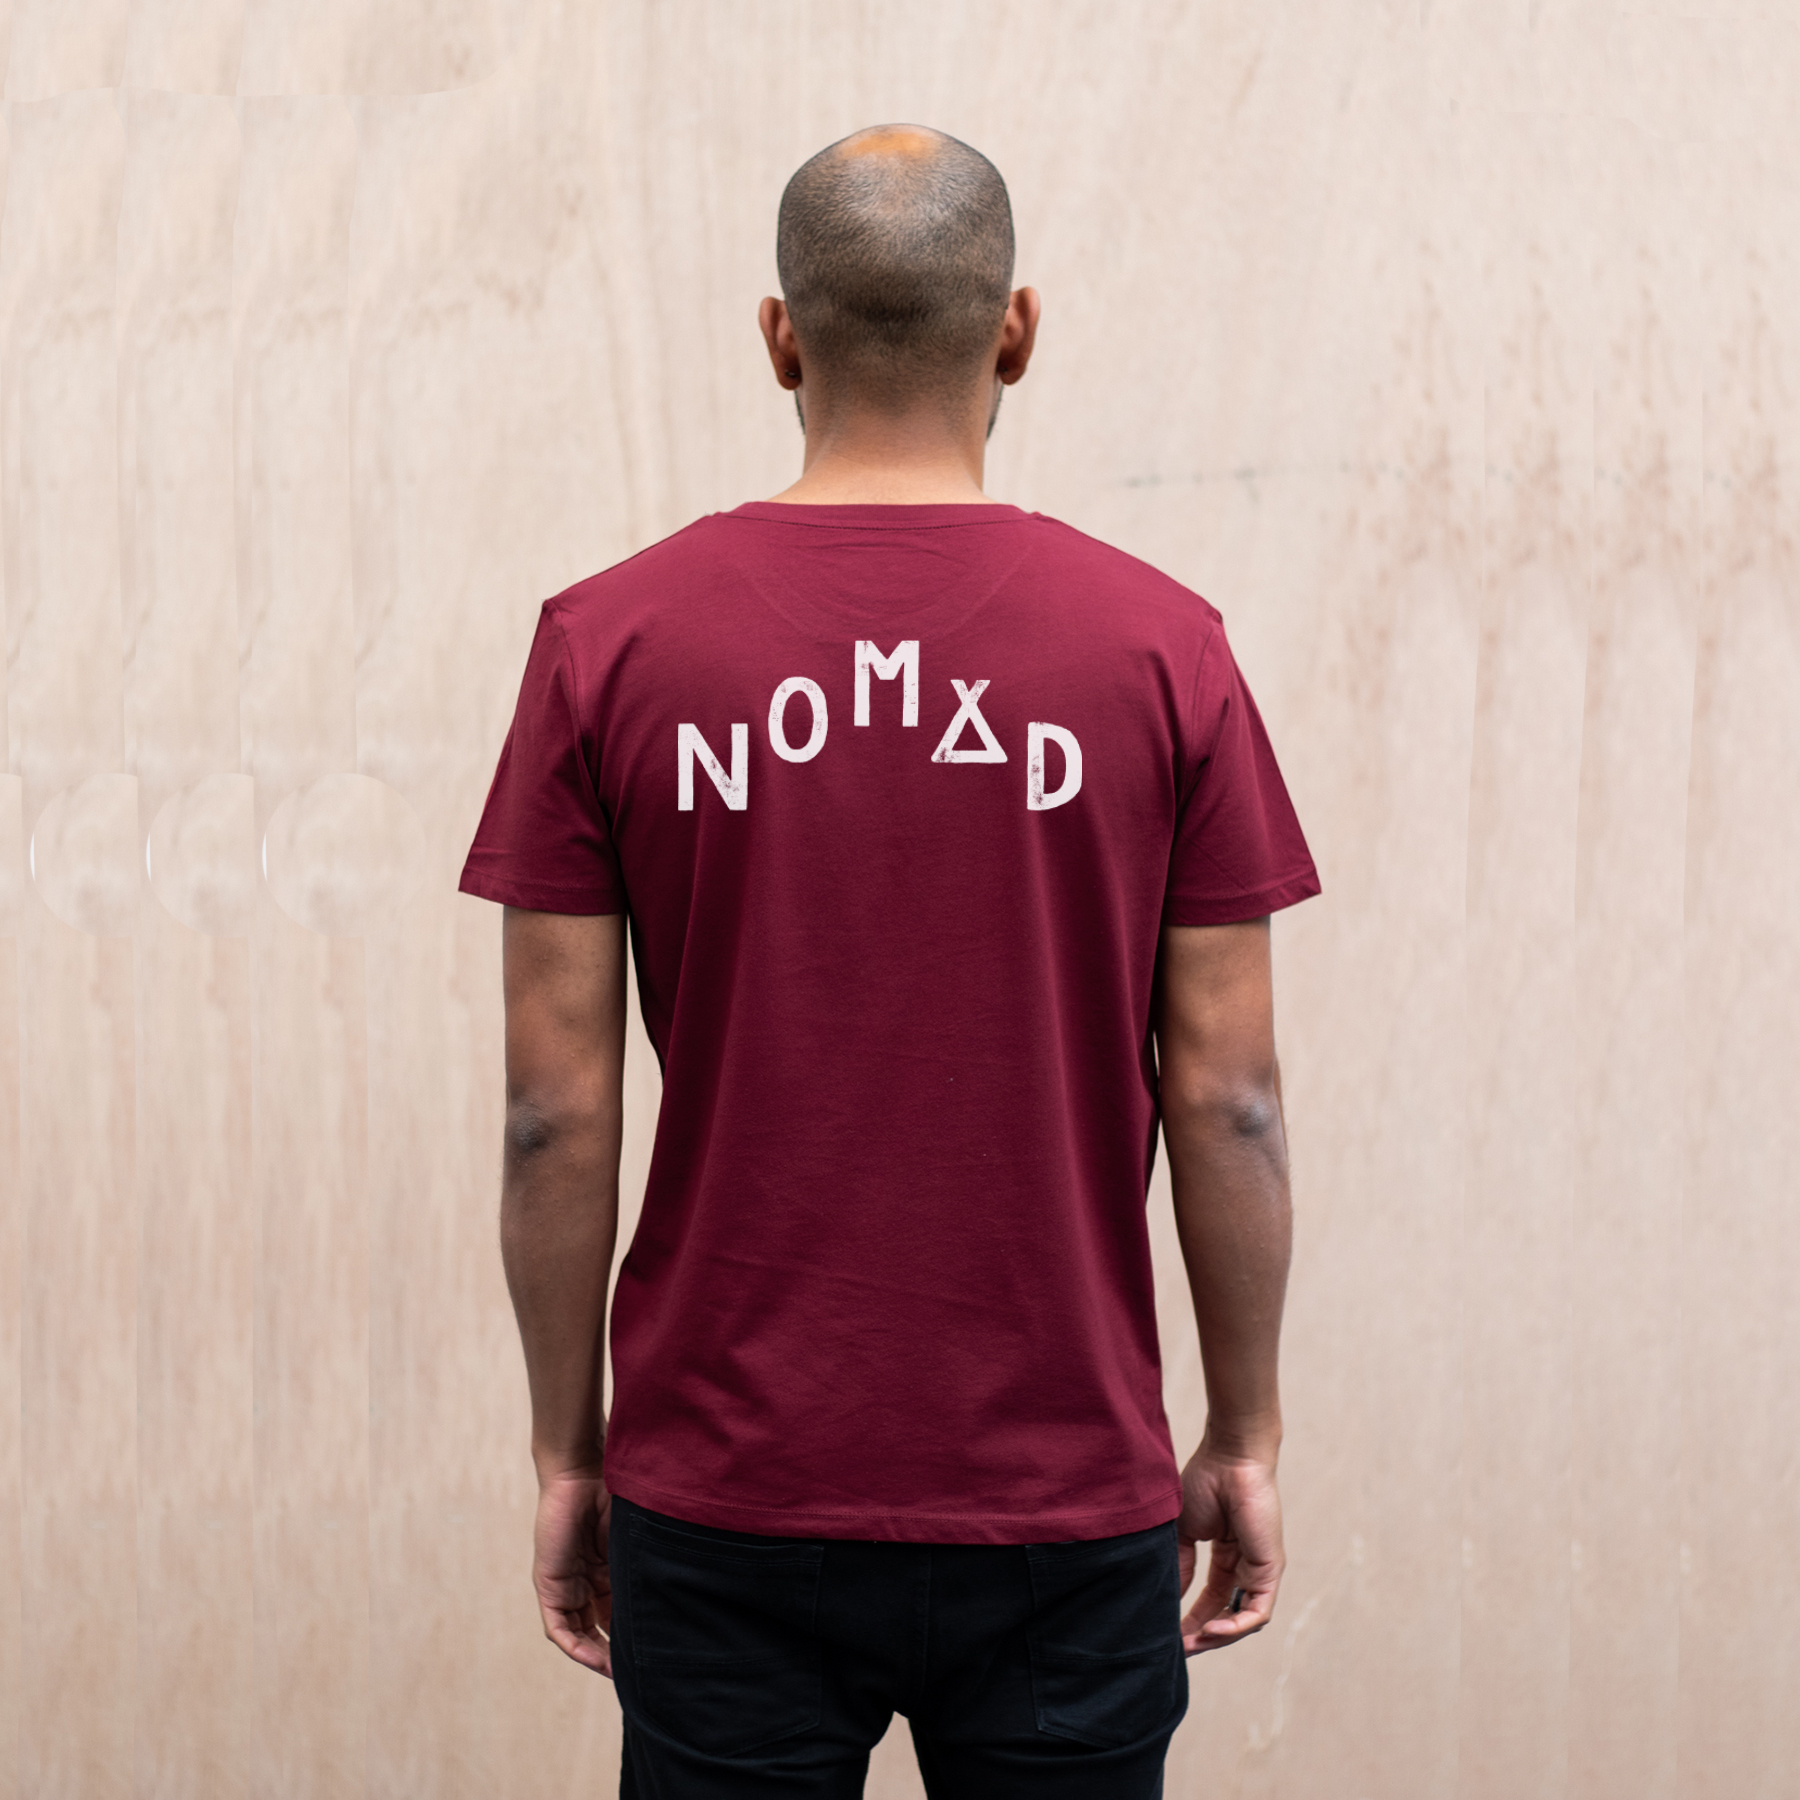 Nomad-organic-cotton-t-shirt-mens-back-The-Level-Collective.jpg